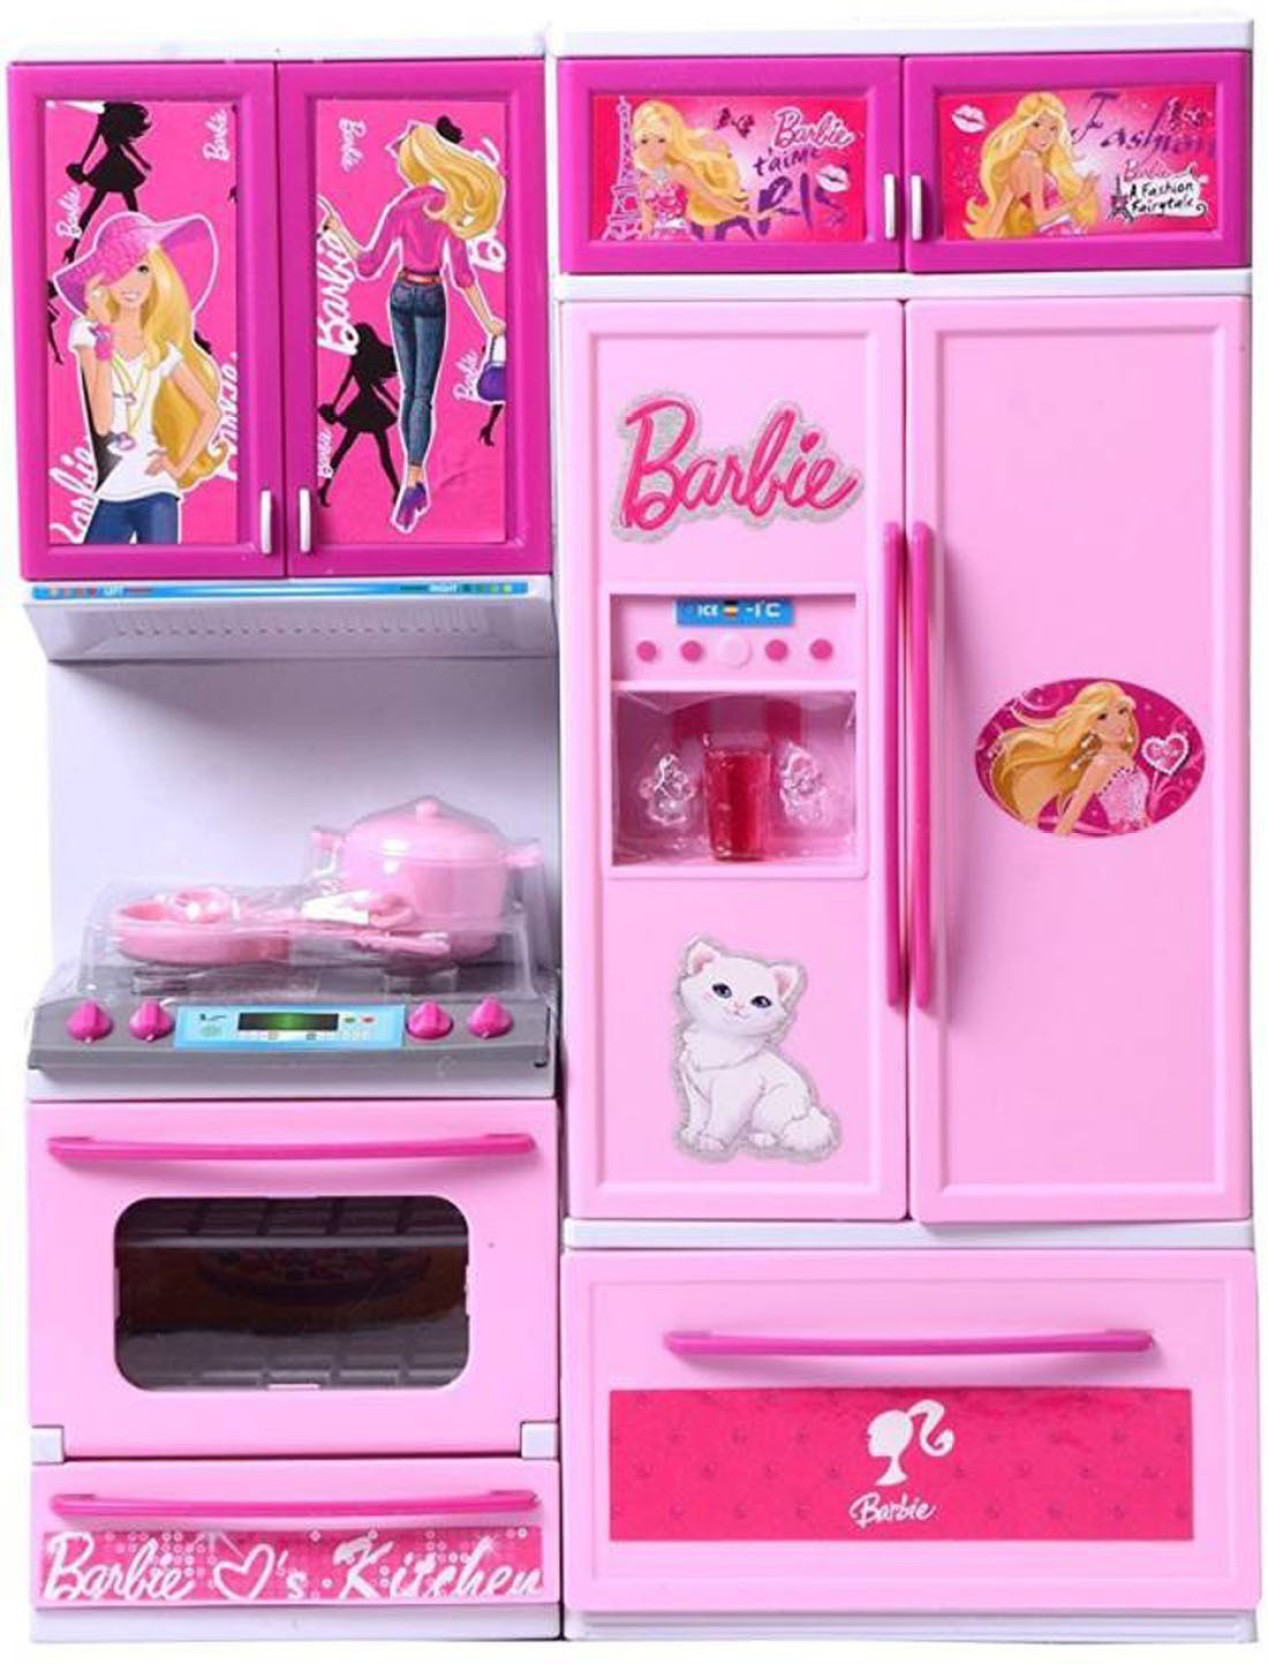 Presentsale Beautiful Barbie Kitchen Play Set Toy With Light Sound For Kids